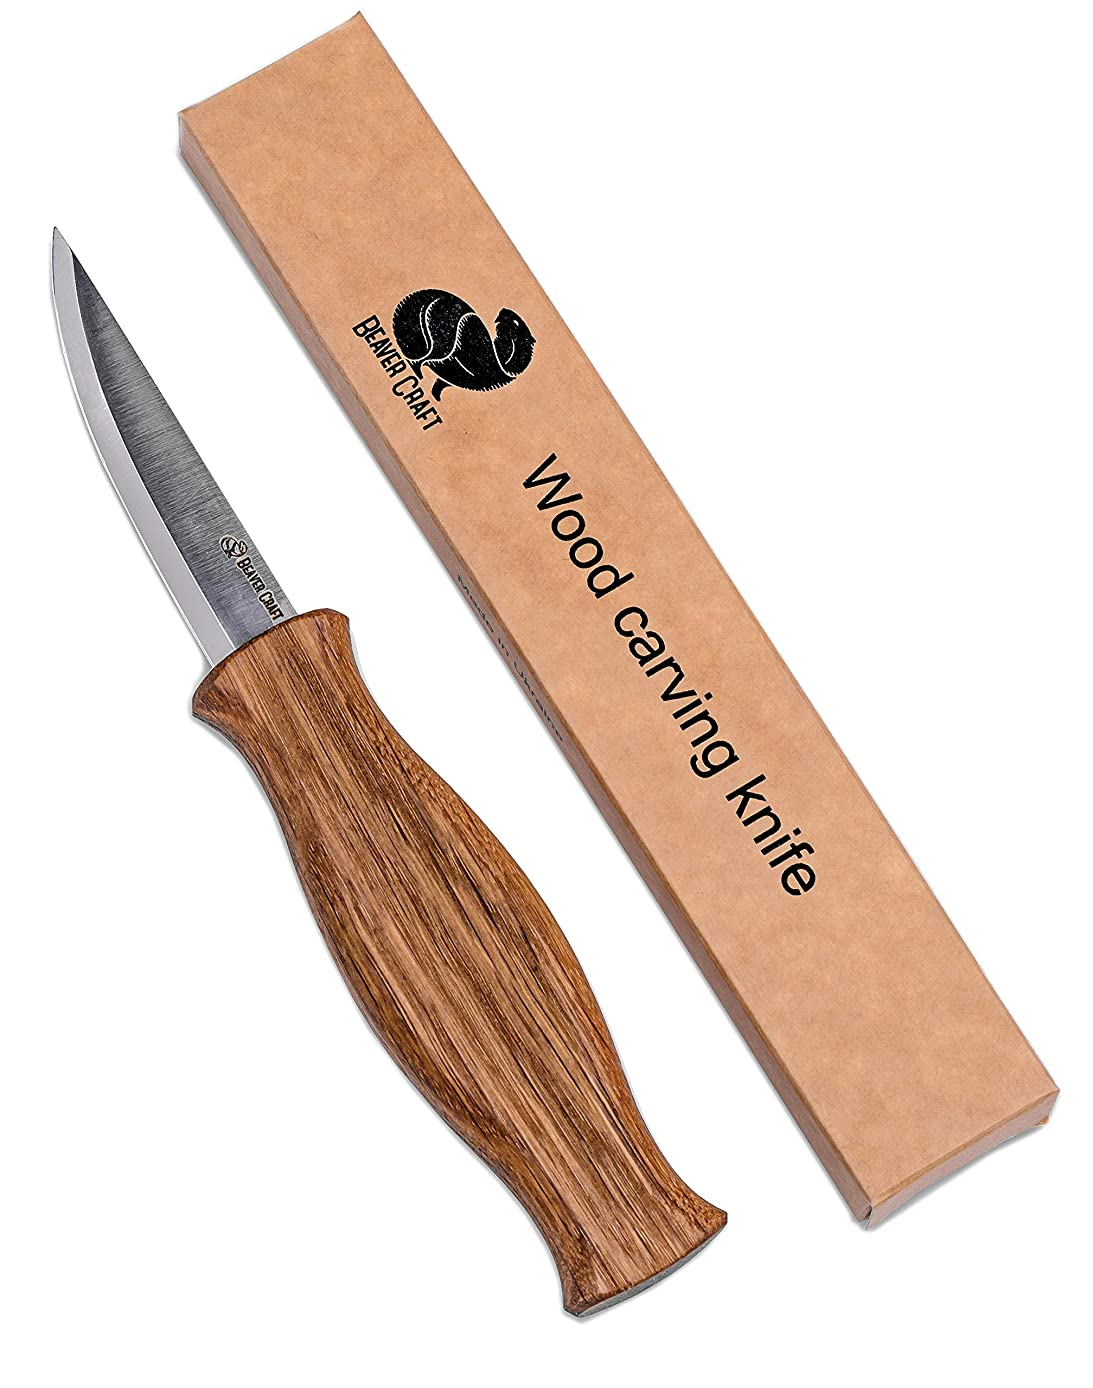 BeaverCraft Wood Carving Sloyd Knife - Hobby Craft for Adults And Children -Whittling Wood Carving Tools For Beginners - Roughing And Fine Carving Knife - High Carbon Steel Knife Wood Handle